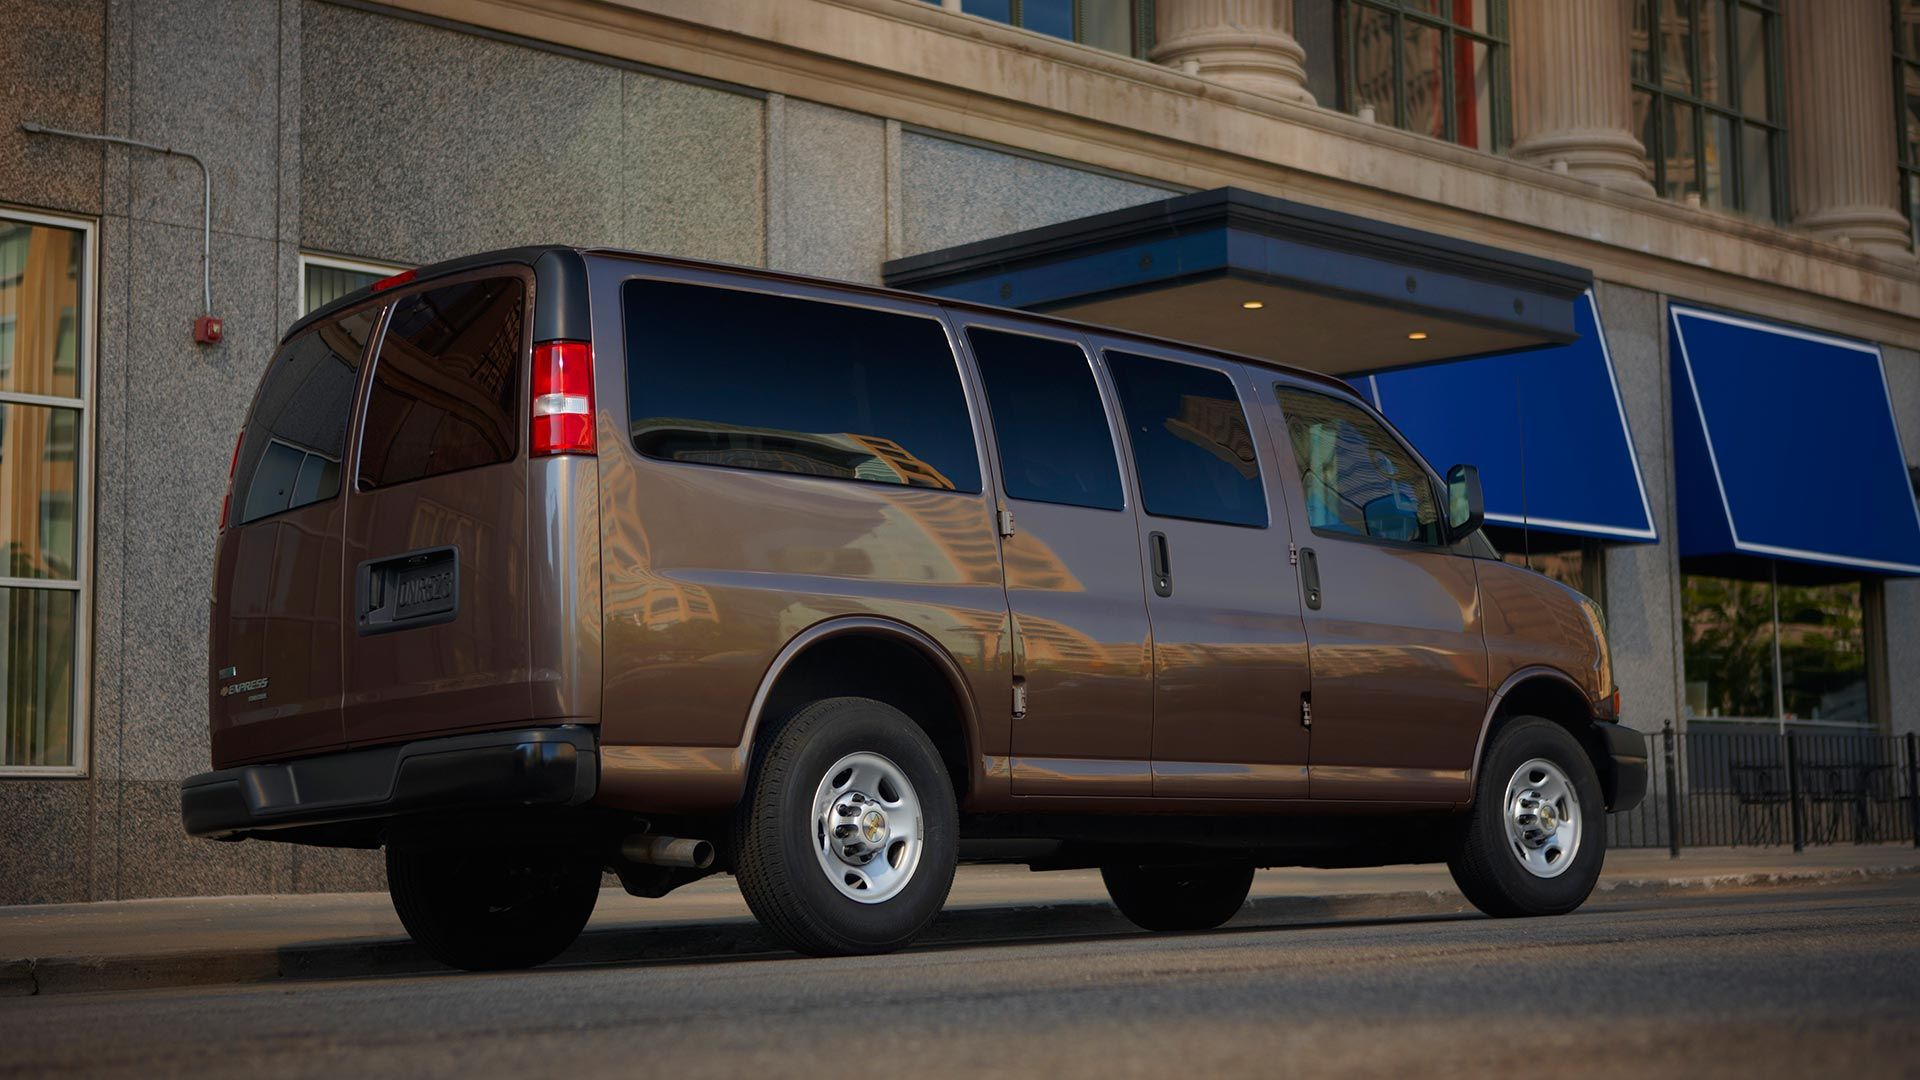 I want to paint our van this color chevy express 3500 passenger van in graystone metallic